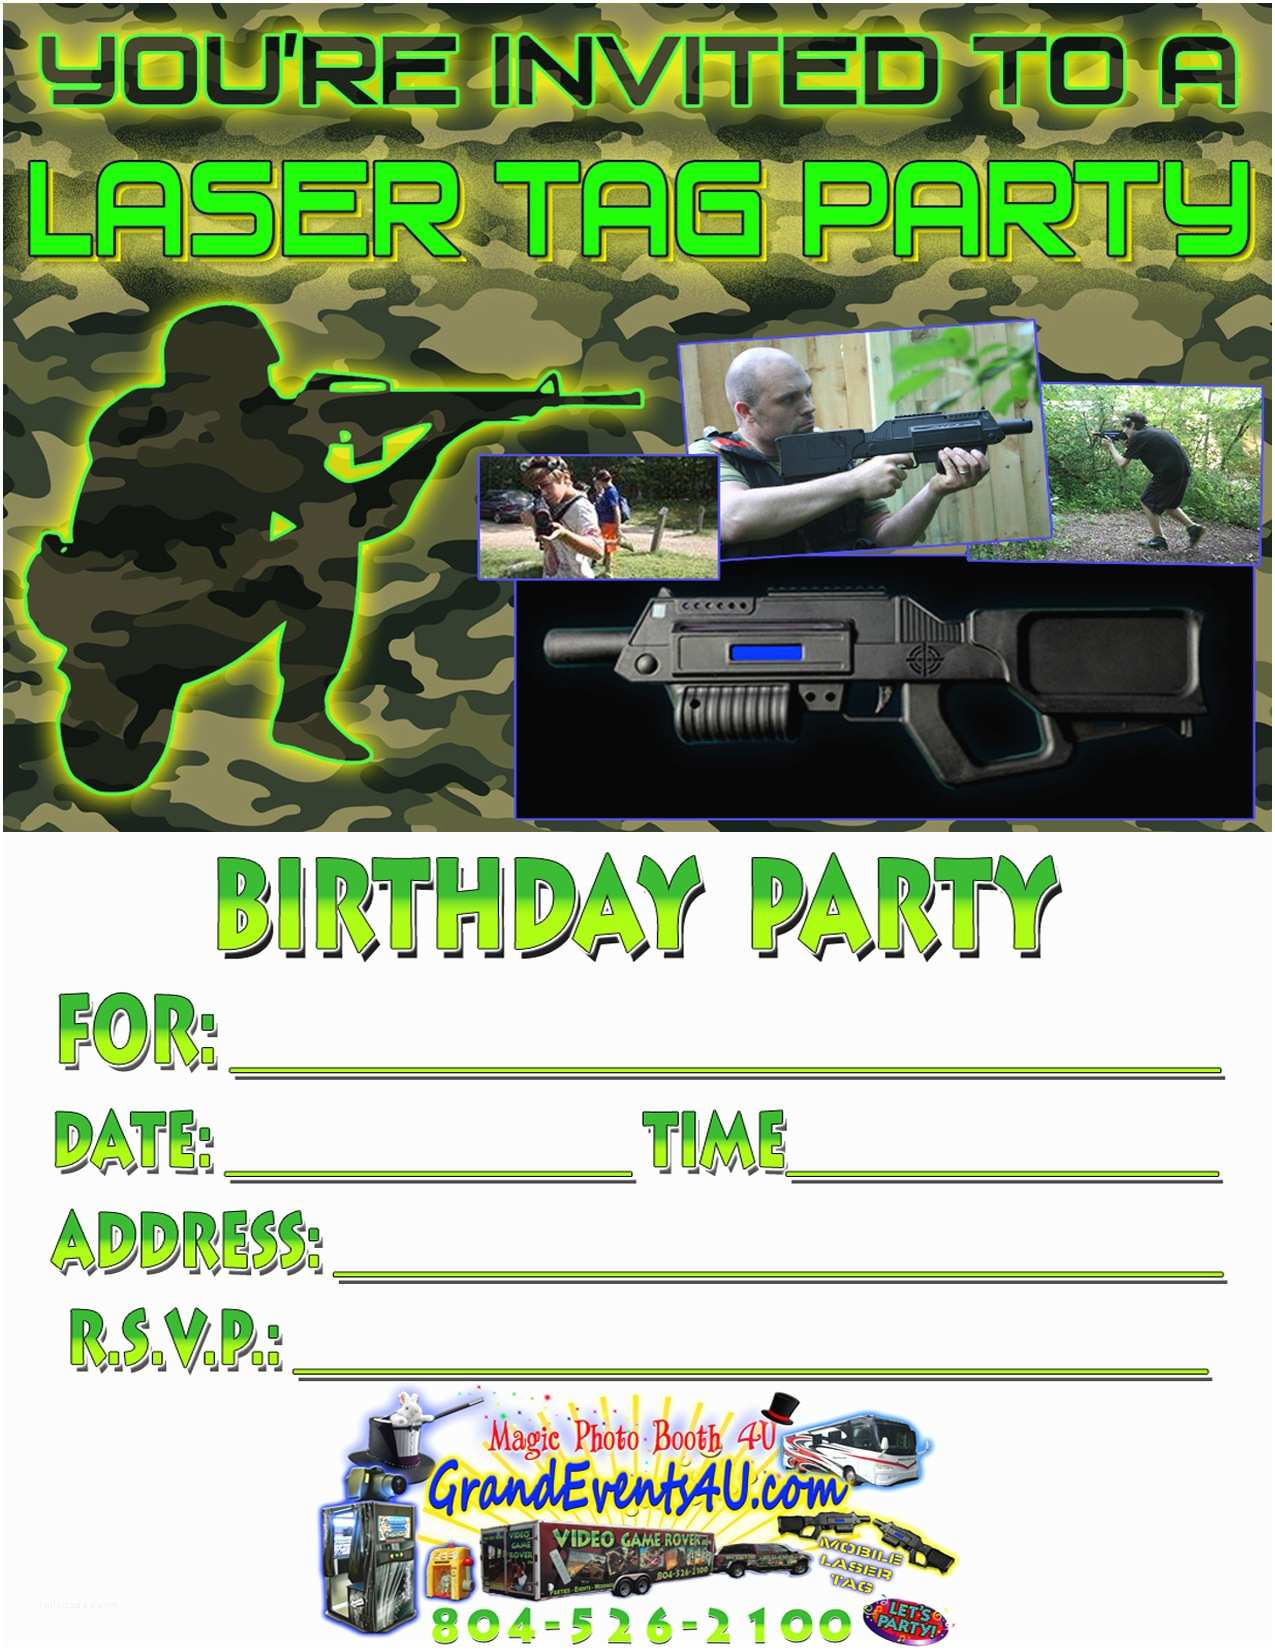 Laser Tag Party Invitations Laser Tag Party Invitations